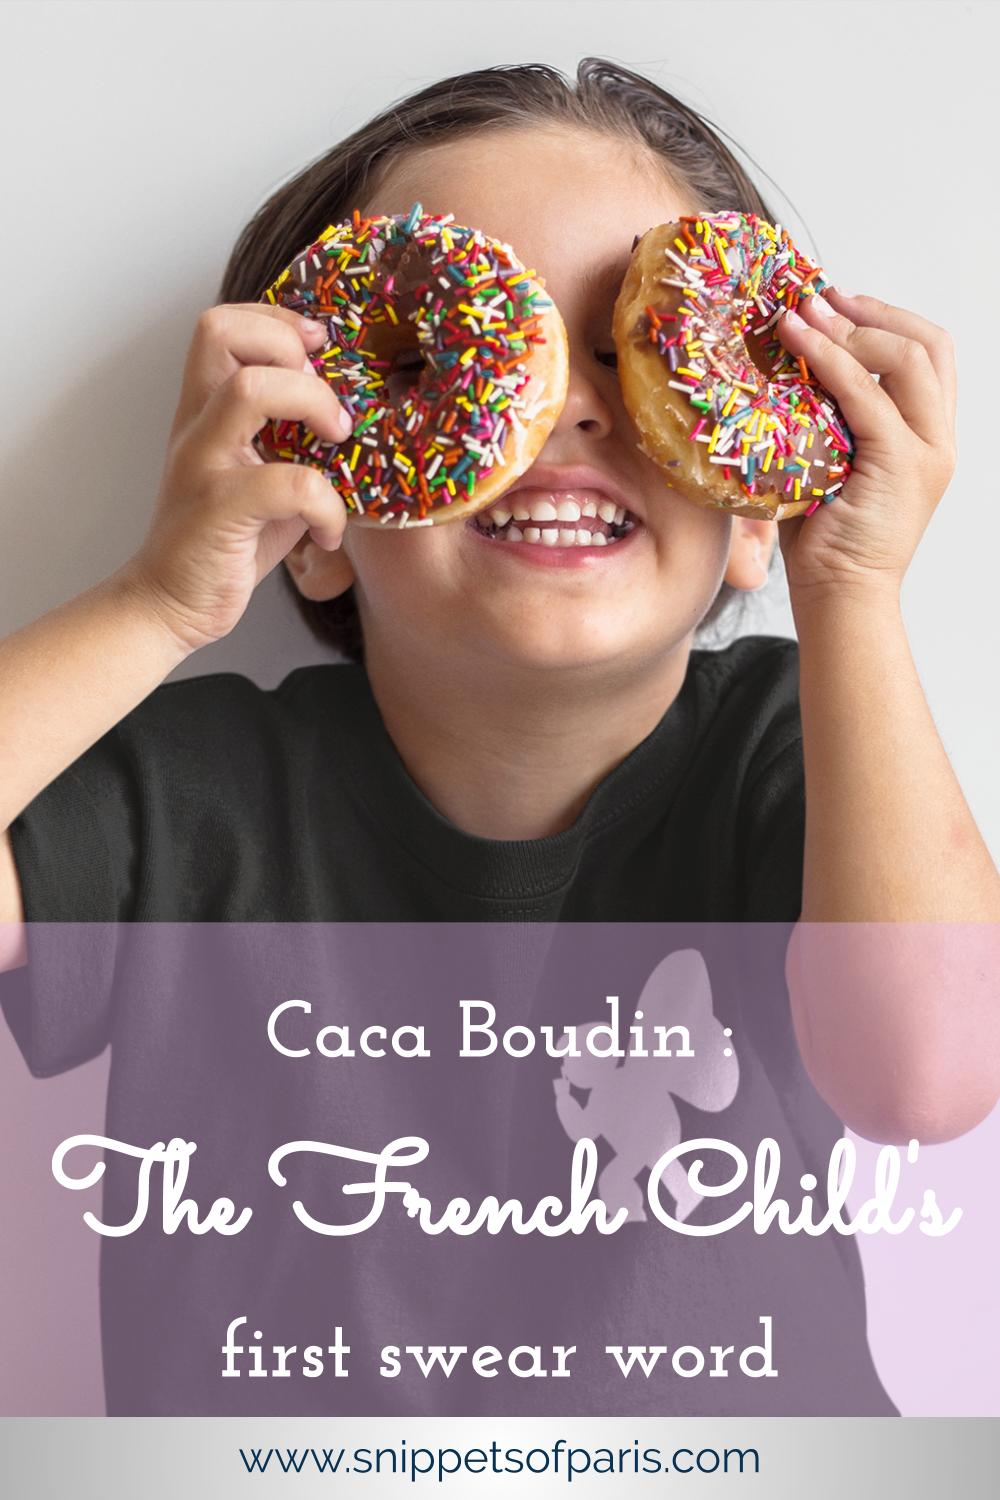 Caca Boudin | Your French Children\'s first swear word